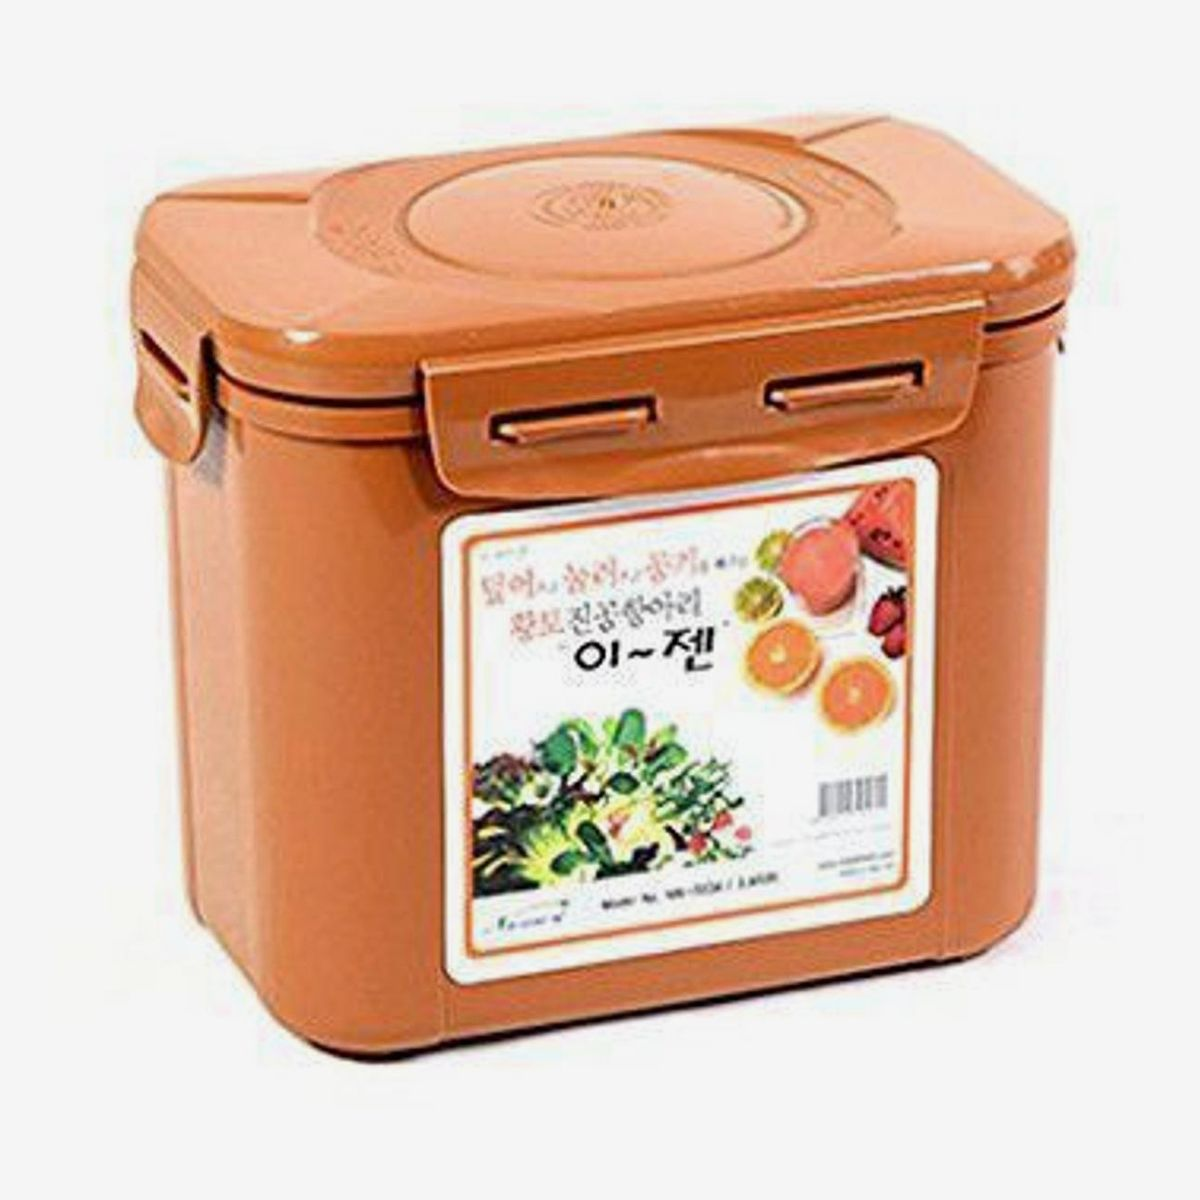 A brown kimchi container